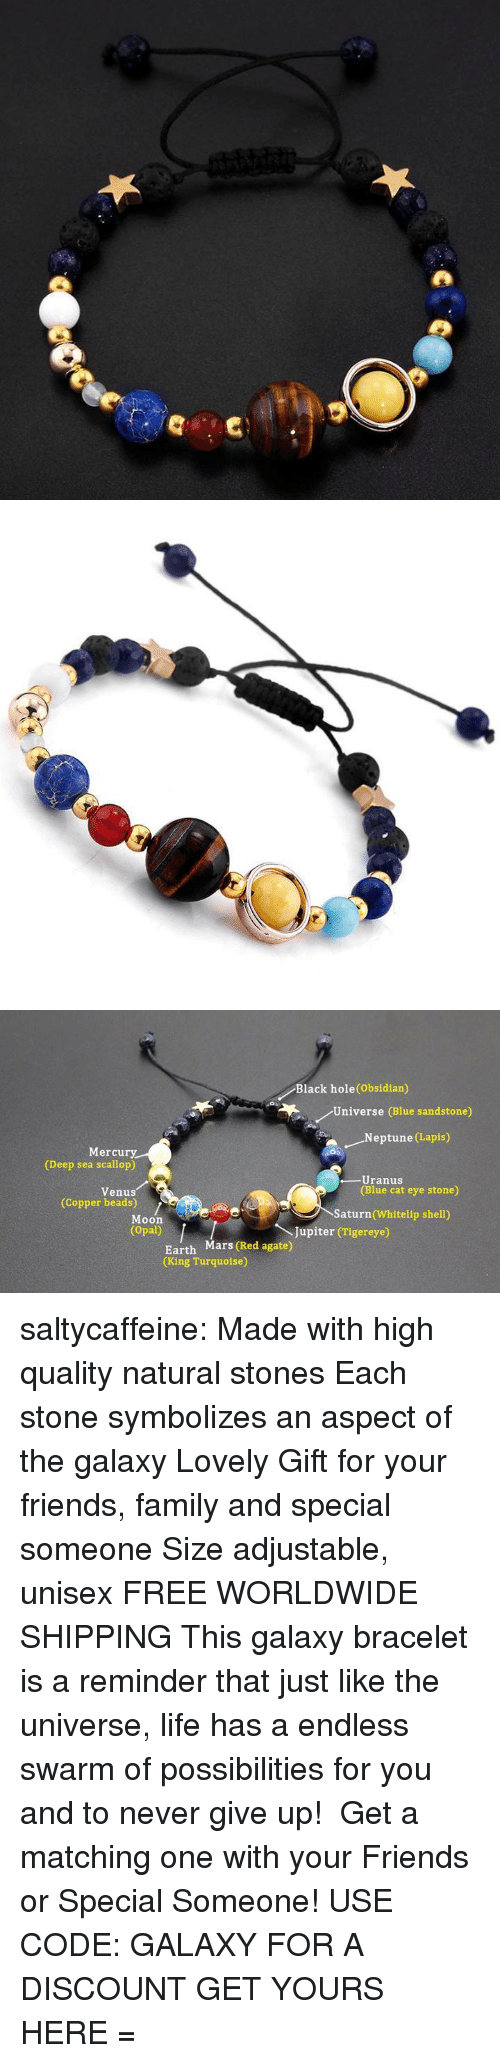 Family, Friends, and Life: Black hole(Obsidian)  Universe (Blue sandstone)  .Neptune (Lapis)  Mercury  (Deep sea scallop)  -Uranus  (Blue cat eye stone)  Venus  (Copper beads)  Saturn (Whitelip shell)  Moon  (Opal)  Jupiter (Tigereye)  Earth Mars (Red agate)  (King Turquoise) saltycaffeine:  Made with high quality natural stones Each stone symbolizes an aspect of the galaxy Lovely Gift for your friends, family and special someone Size adjustable, unisex FREE WORLDWIDE SHIPPING This galaxy bracelet is a reminder that just like the universe, life has a endless swarm of possibilities for you and to never give up! Get a matching one with your Friends or Special Someone! USE CODE: GALAXY FOR A DISCOUNT GET YOURS HERE =